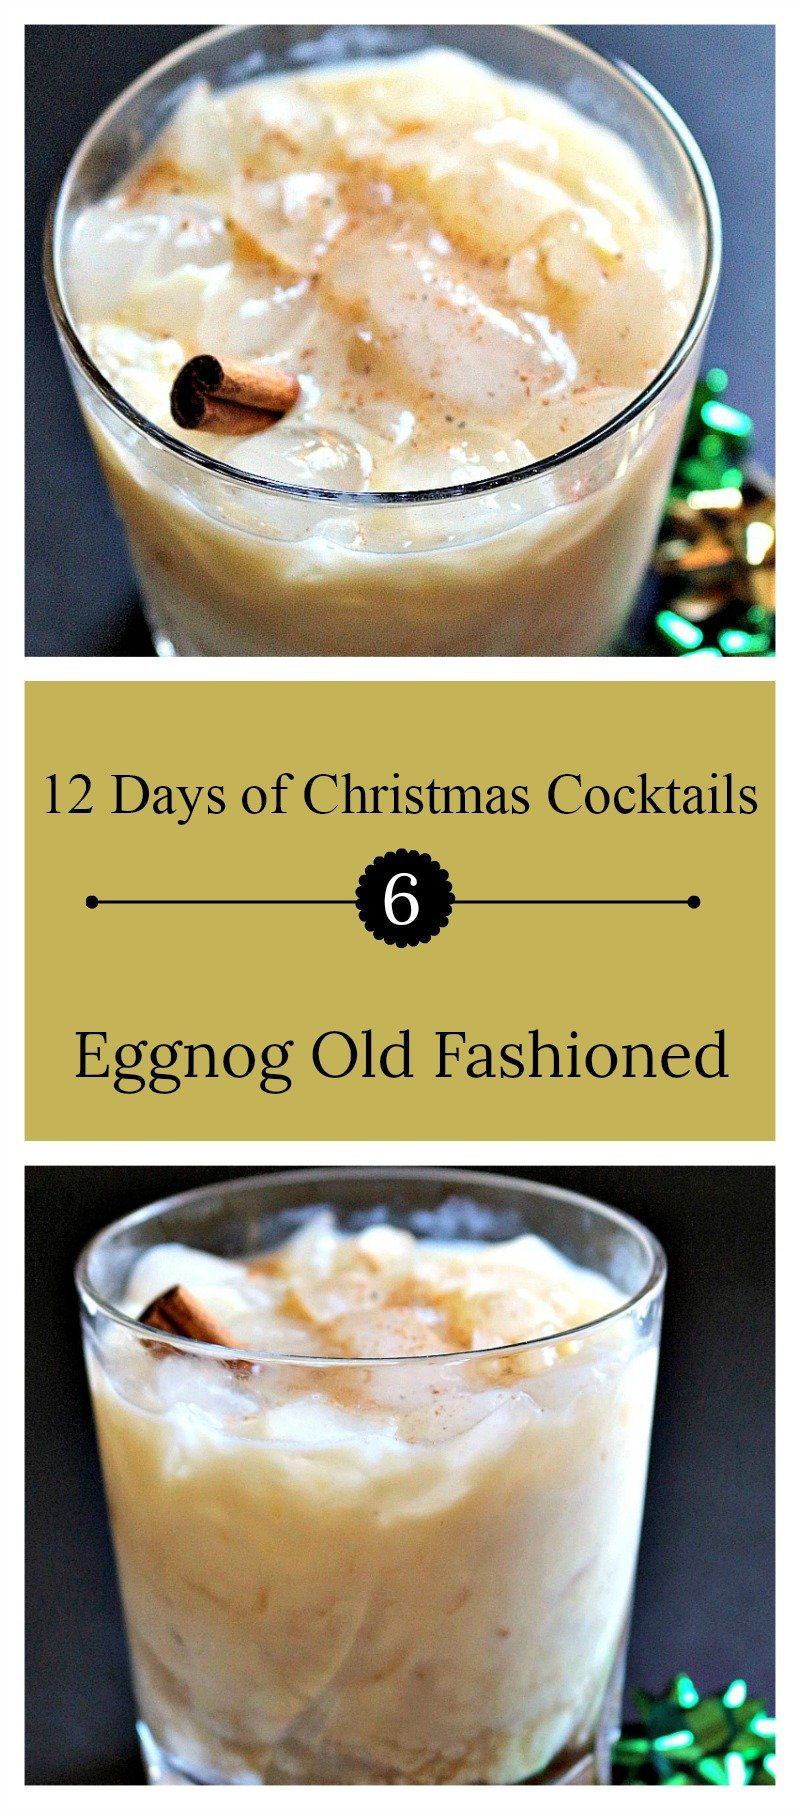 Day 6 of the 12 Days of Christmas cocktails | A delightful holiday cocktail with eggnog, brandy, Frangelico, and cardamom bitters.